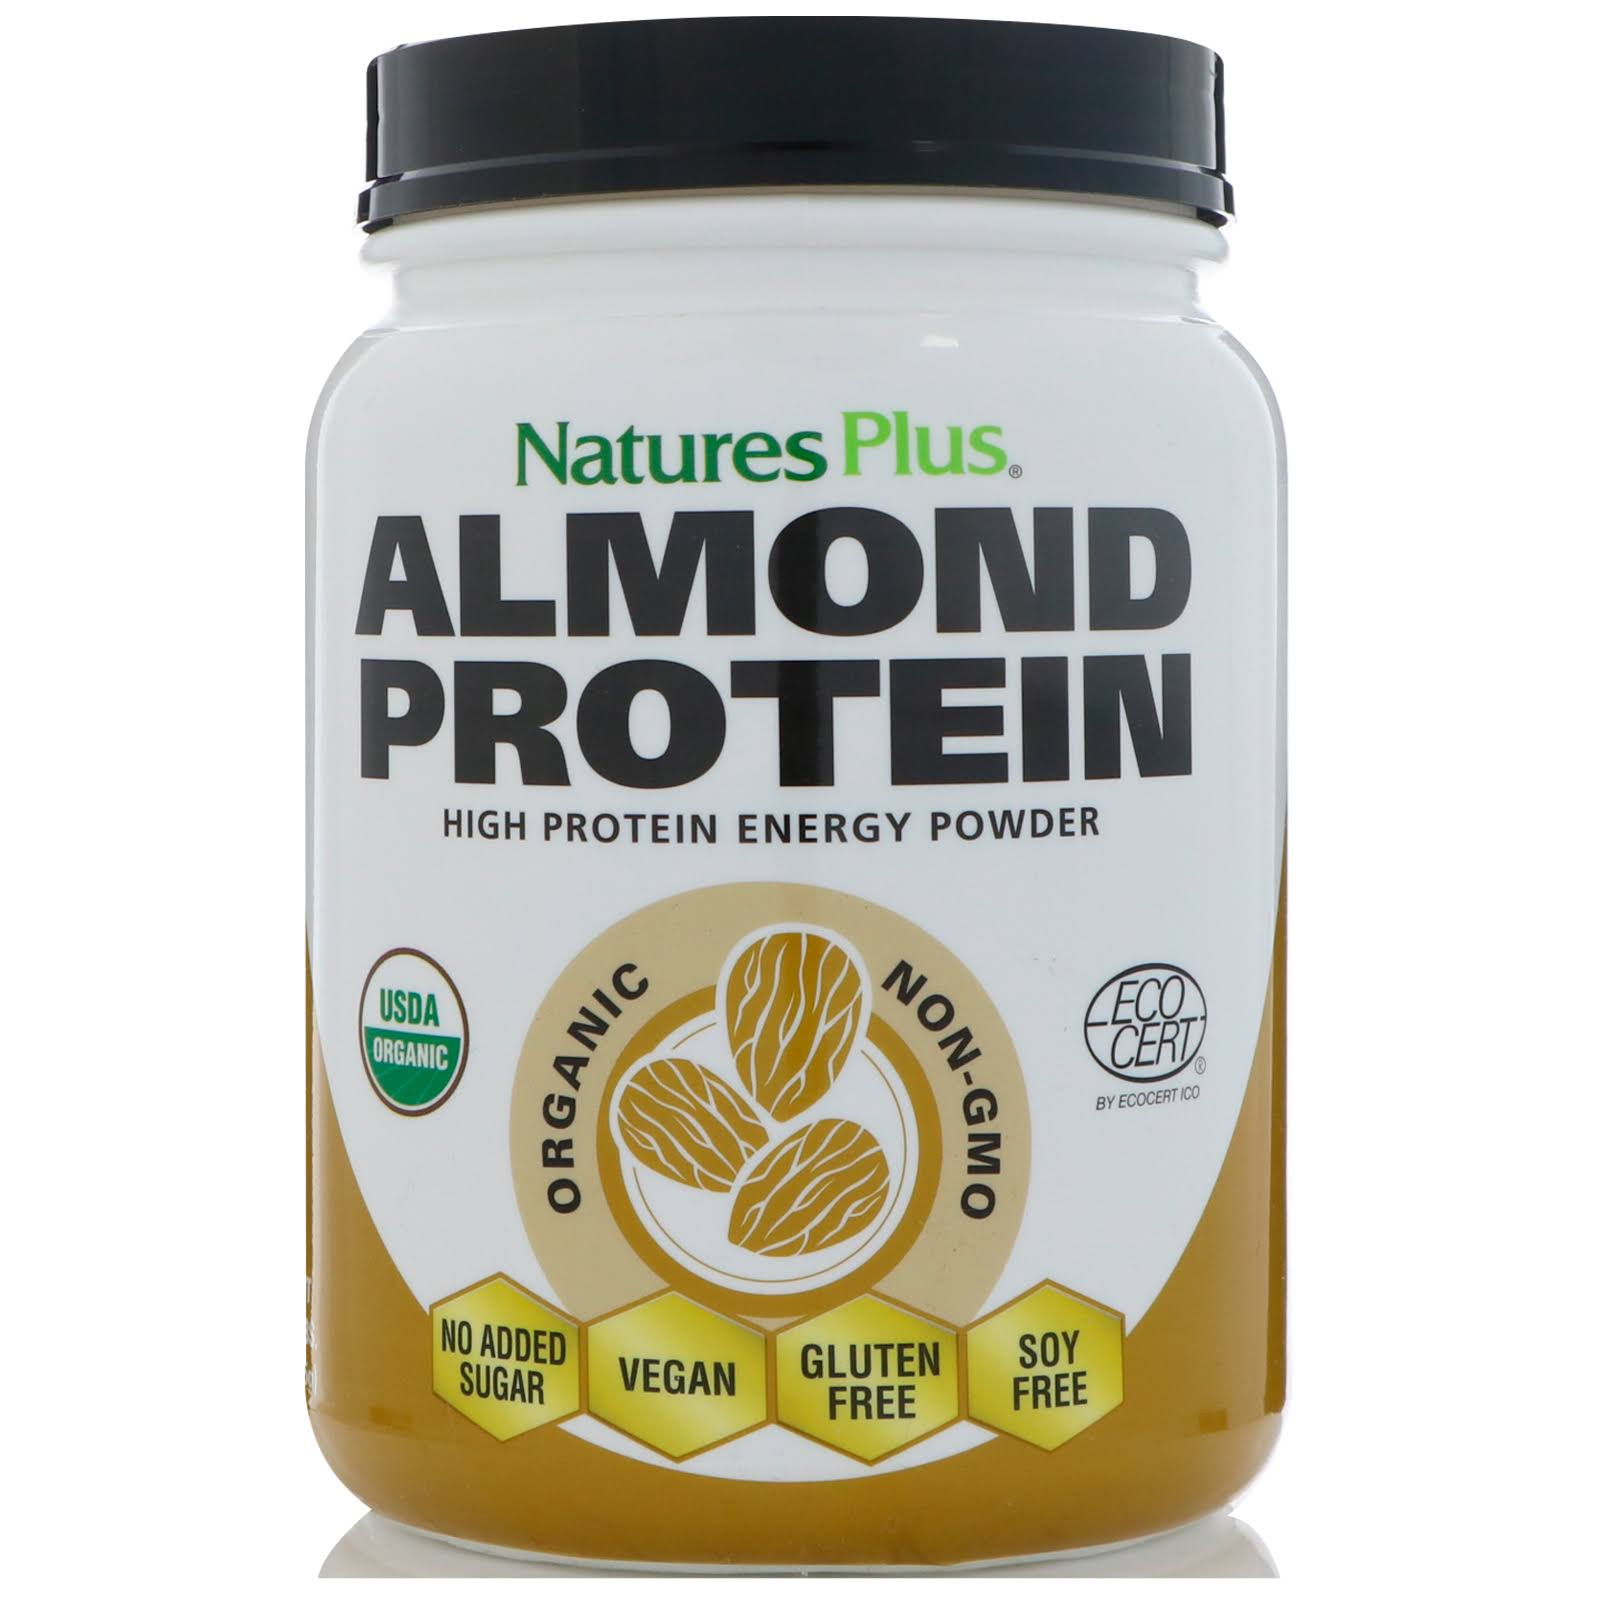 Nature's Plus Almond Protein-1.04 lbs Powder